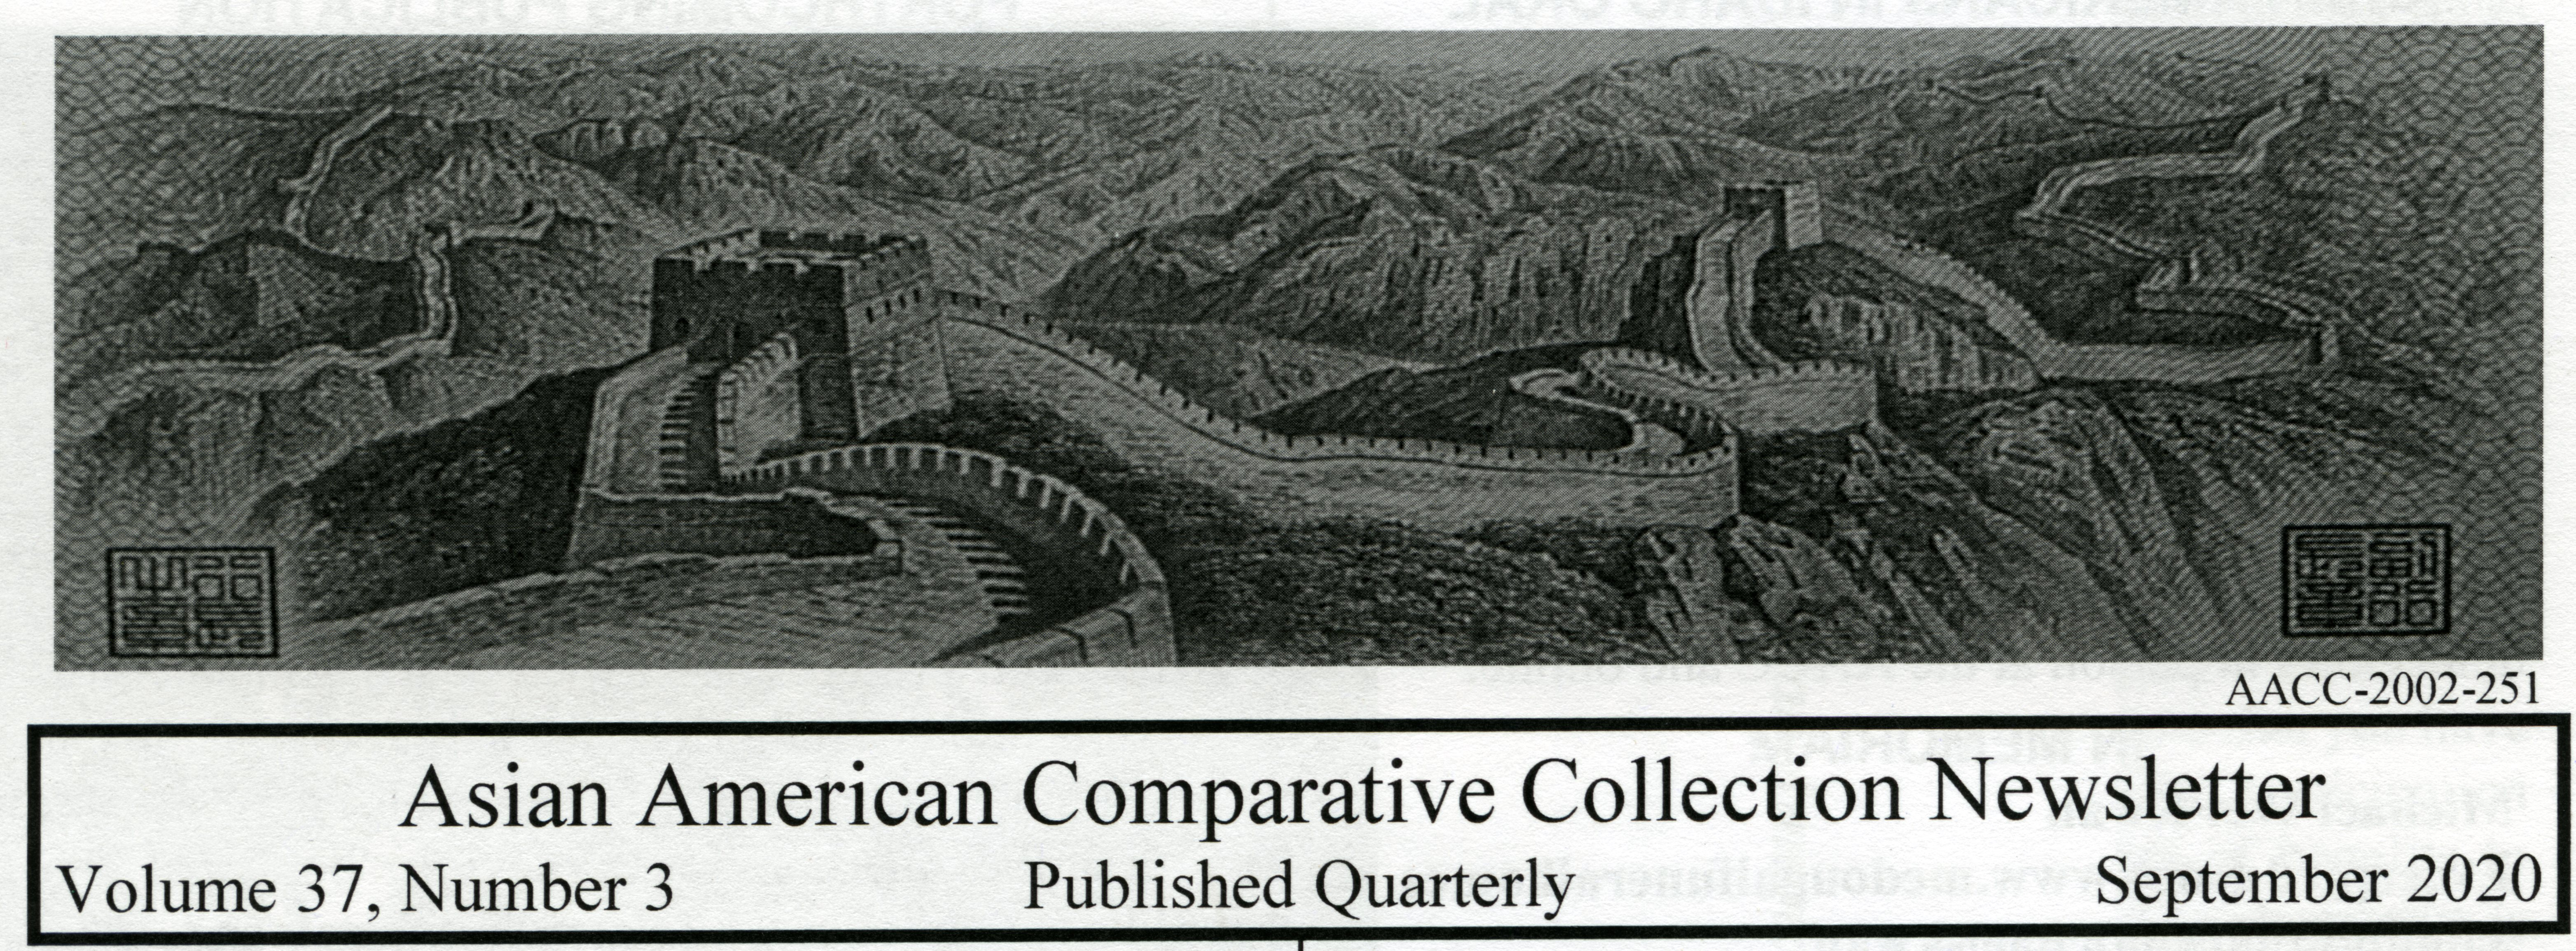 Preview image for Asian American Comparative Collection newsletter